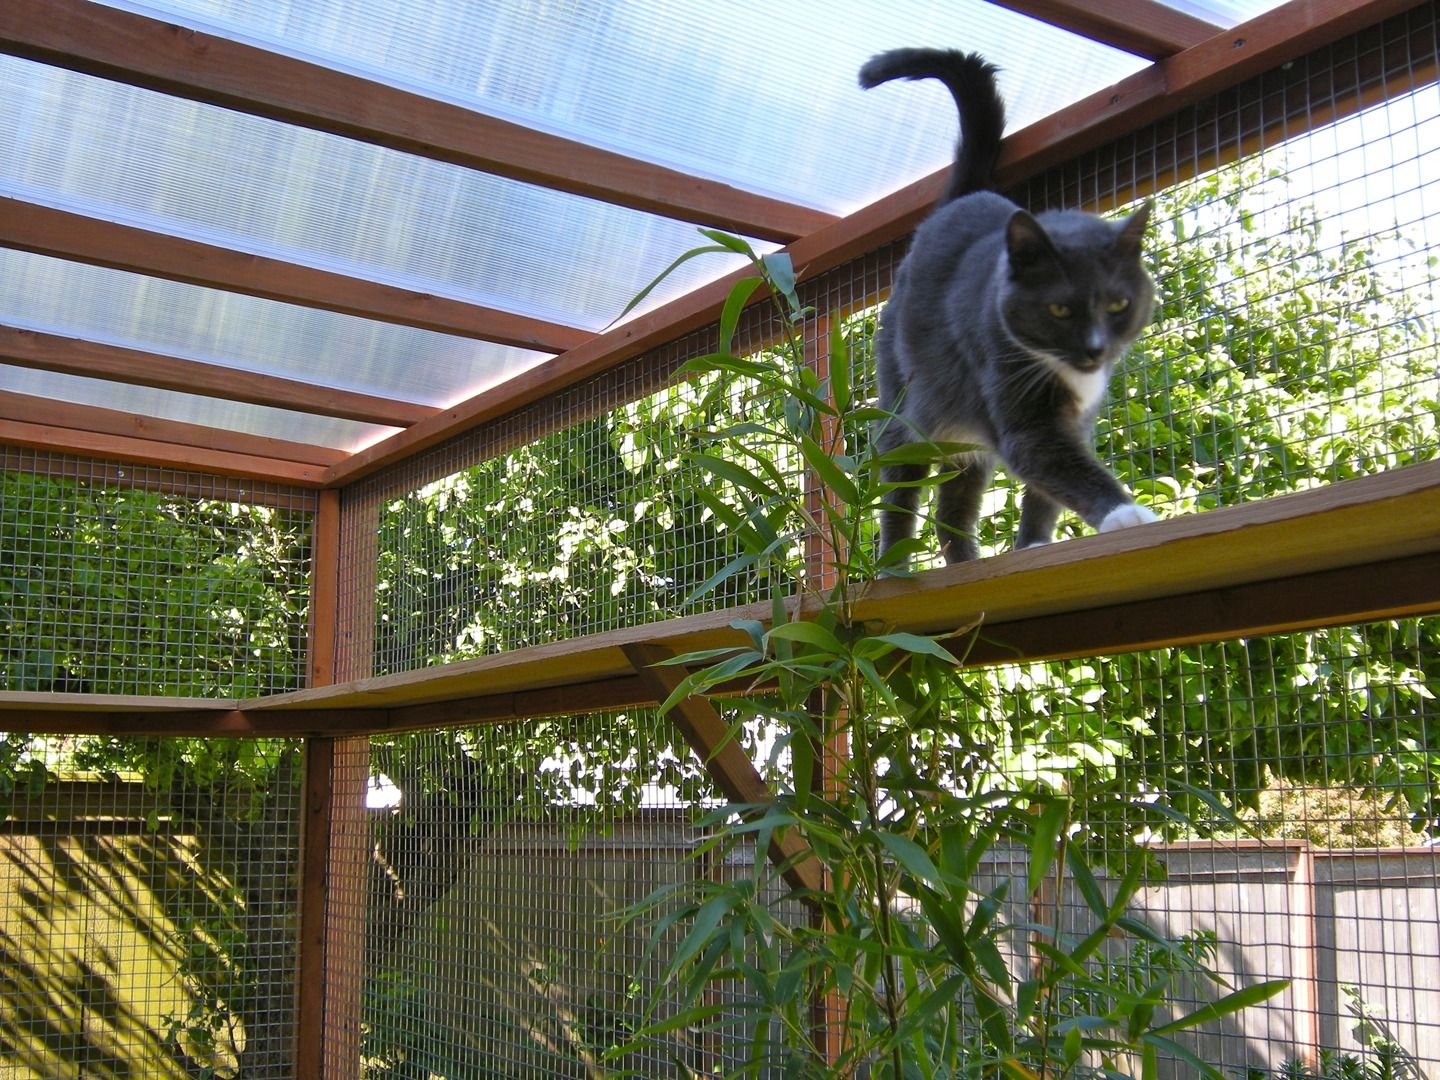 Catio spaces diy catio plans and cat enclosures for Exterior enclosure